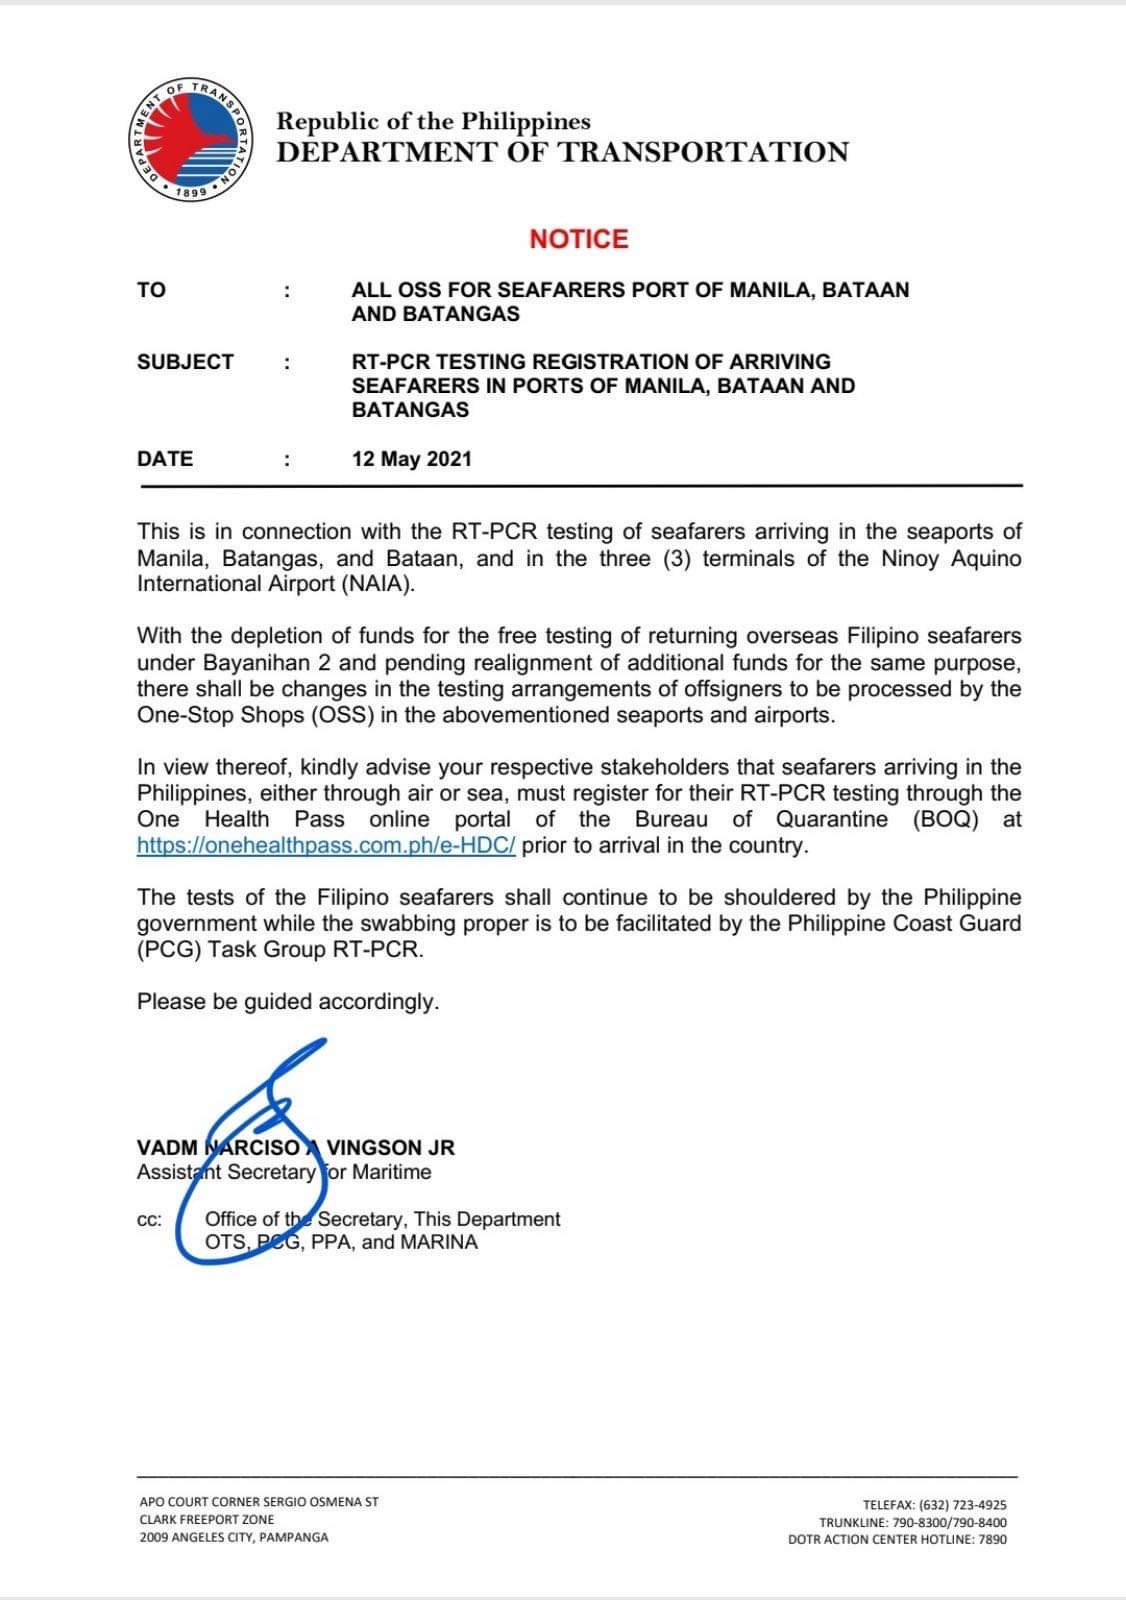 Department of Transportation Notice re RT-PCR Registration of Arriving Seafarers in Ports of Manila, Bataan and Batangas dated 12 May 2021